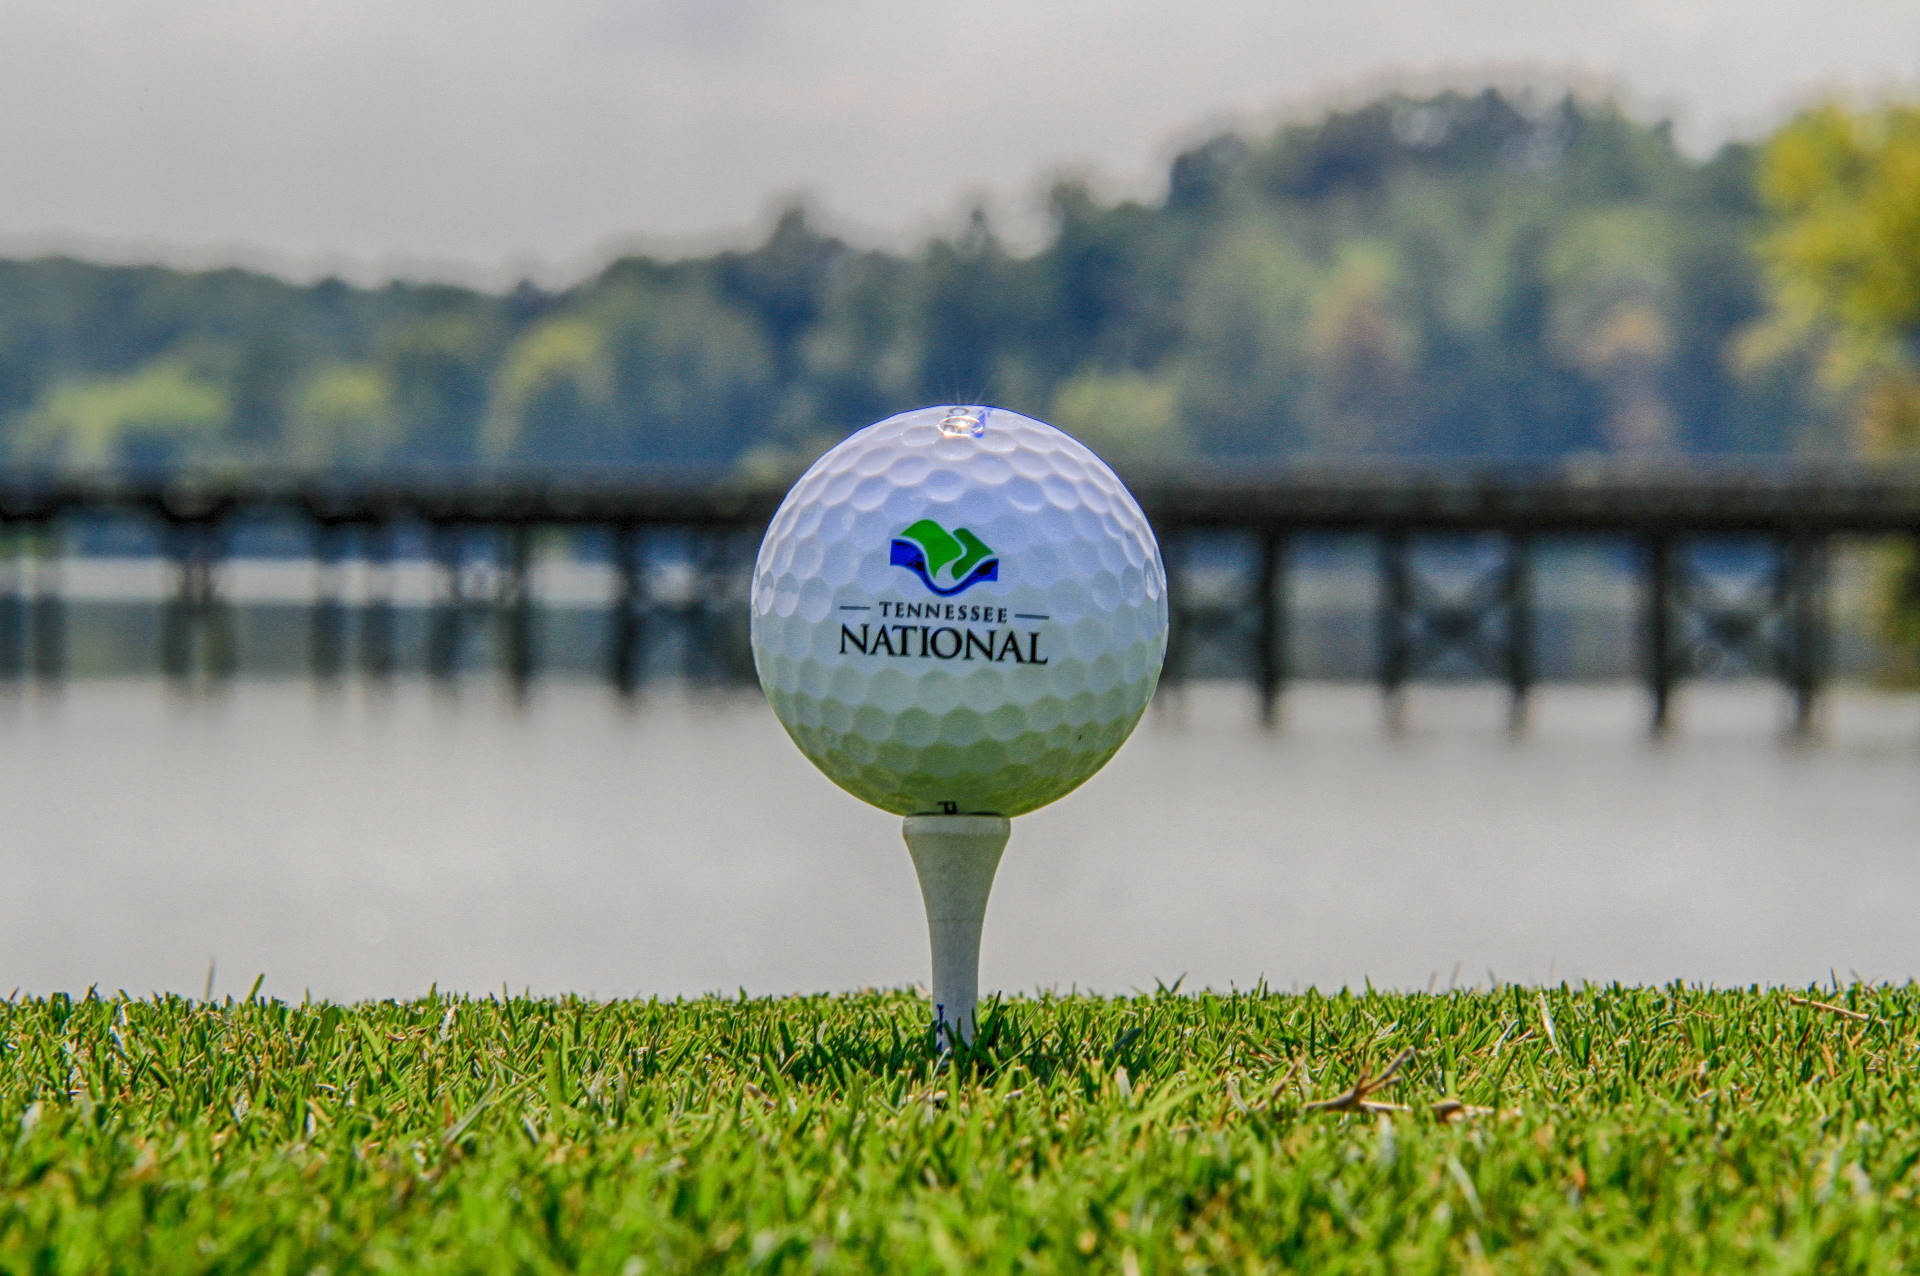 Tennessee National Logo on a Golf Ball with Lake in Background